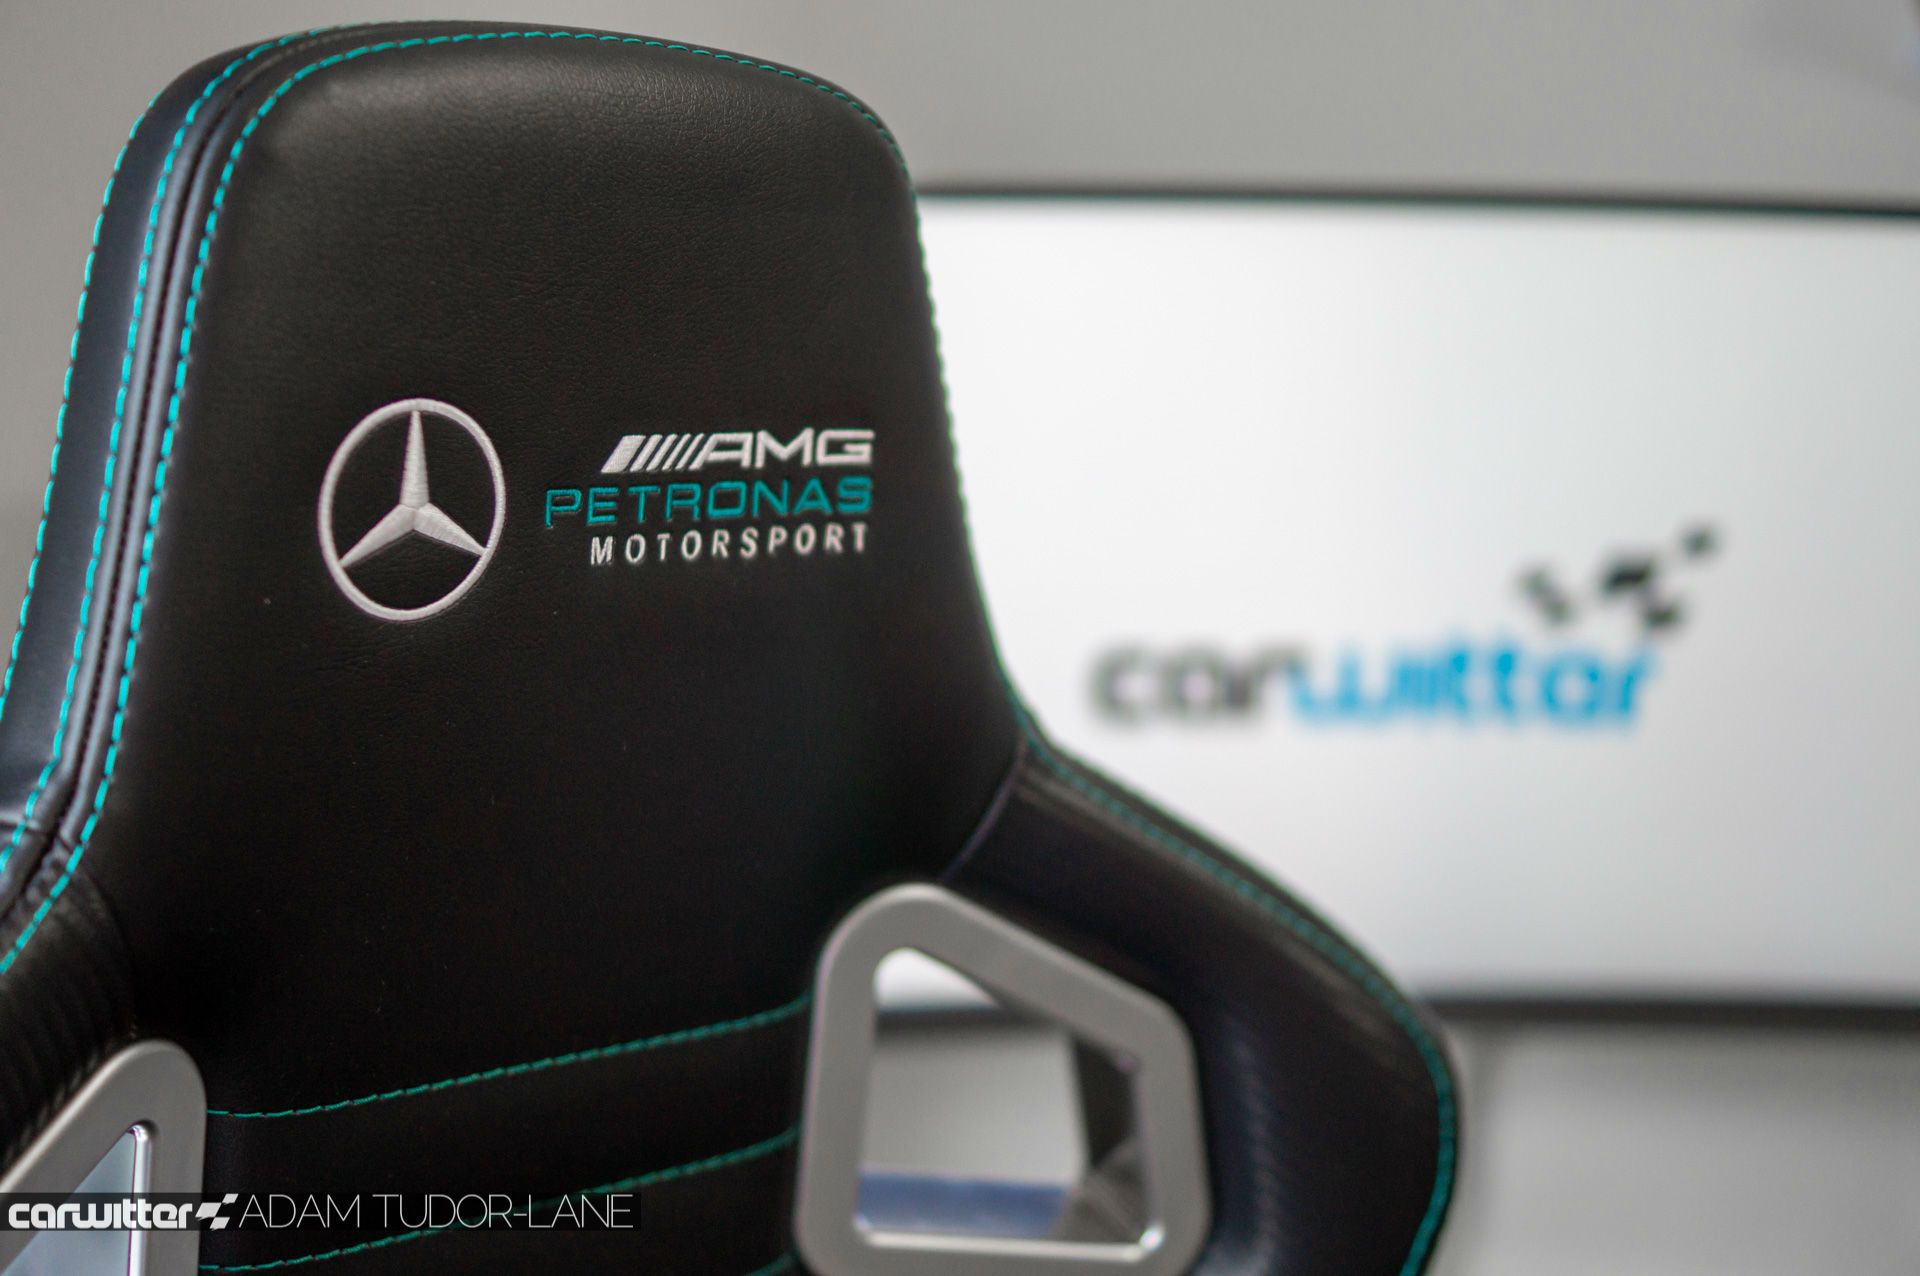 Incredible Noblechairs Mercedes Amg Petronas F1 Office Chair Review Creativecarmelina Interior Chair Design Creativecarmelinacom